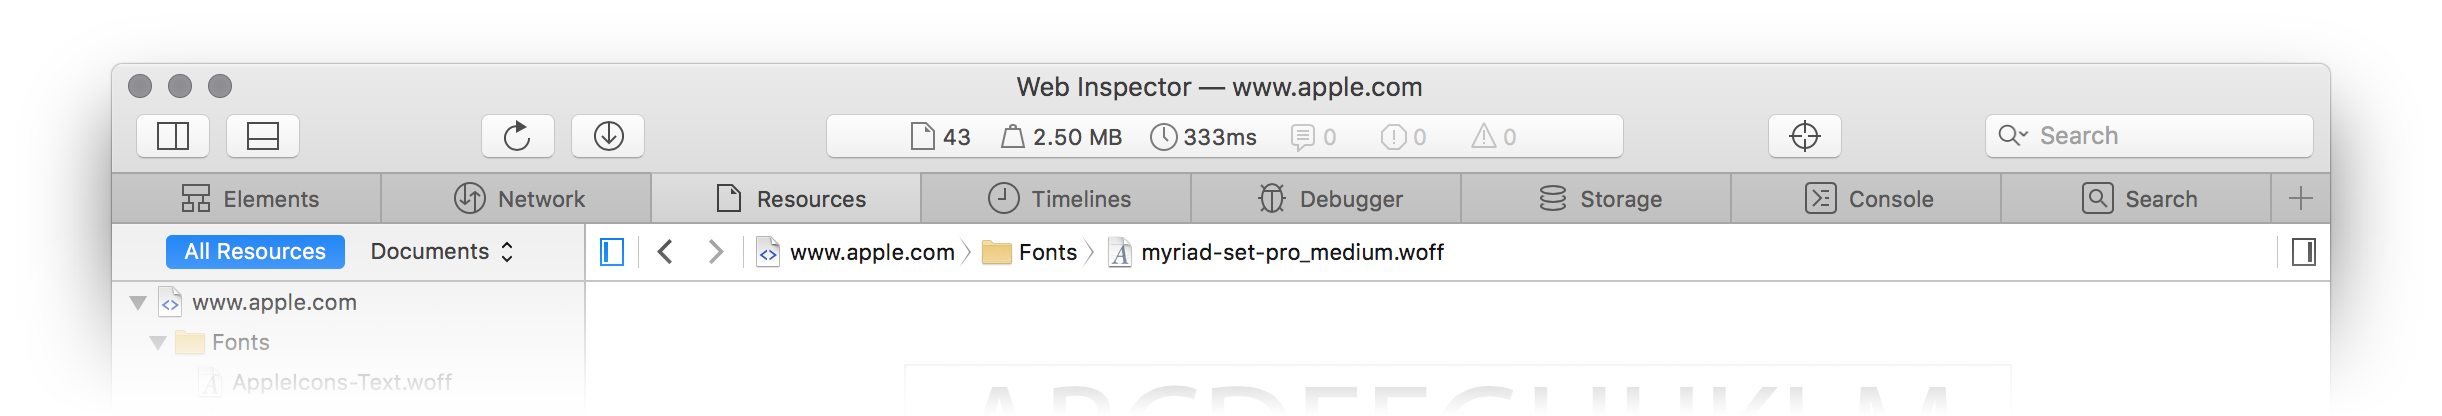 Websites/webkit.org/blog-files/inspector-tab-bar-2x.png